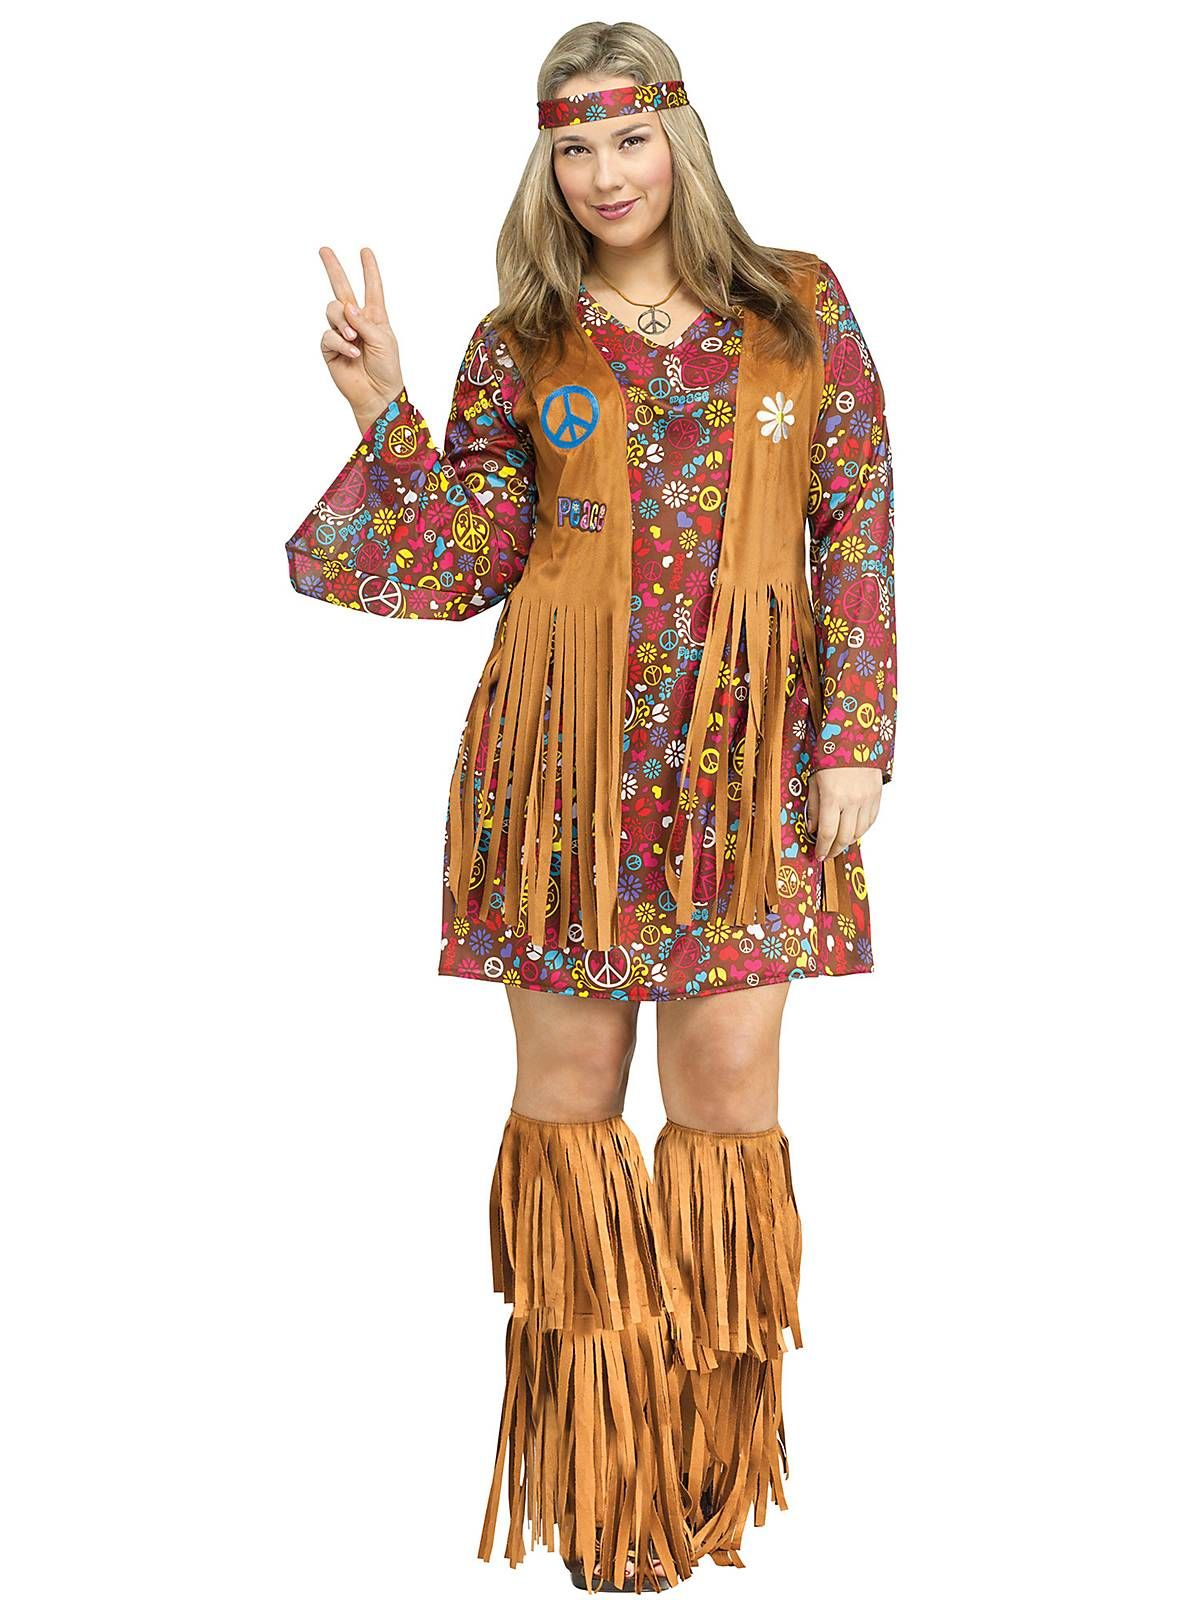 Plus Size Peace and Love Hippie Adult Plus Size Costume  sc 1 st  Pinterest & Plus Size Peace and Love Hippie Adult Plus Size Costume   Hippie ...